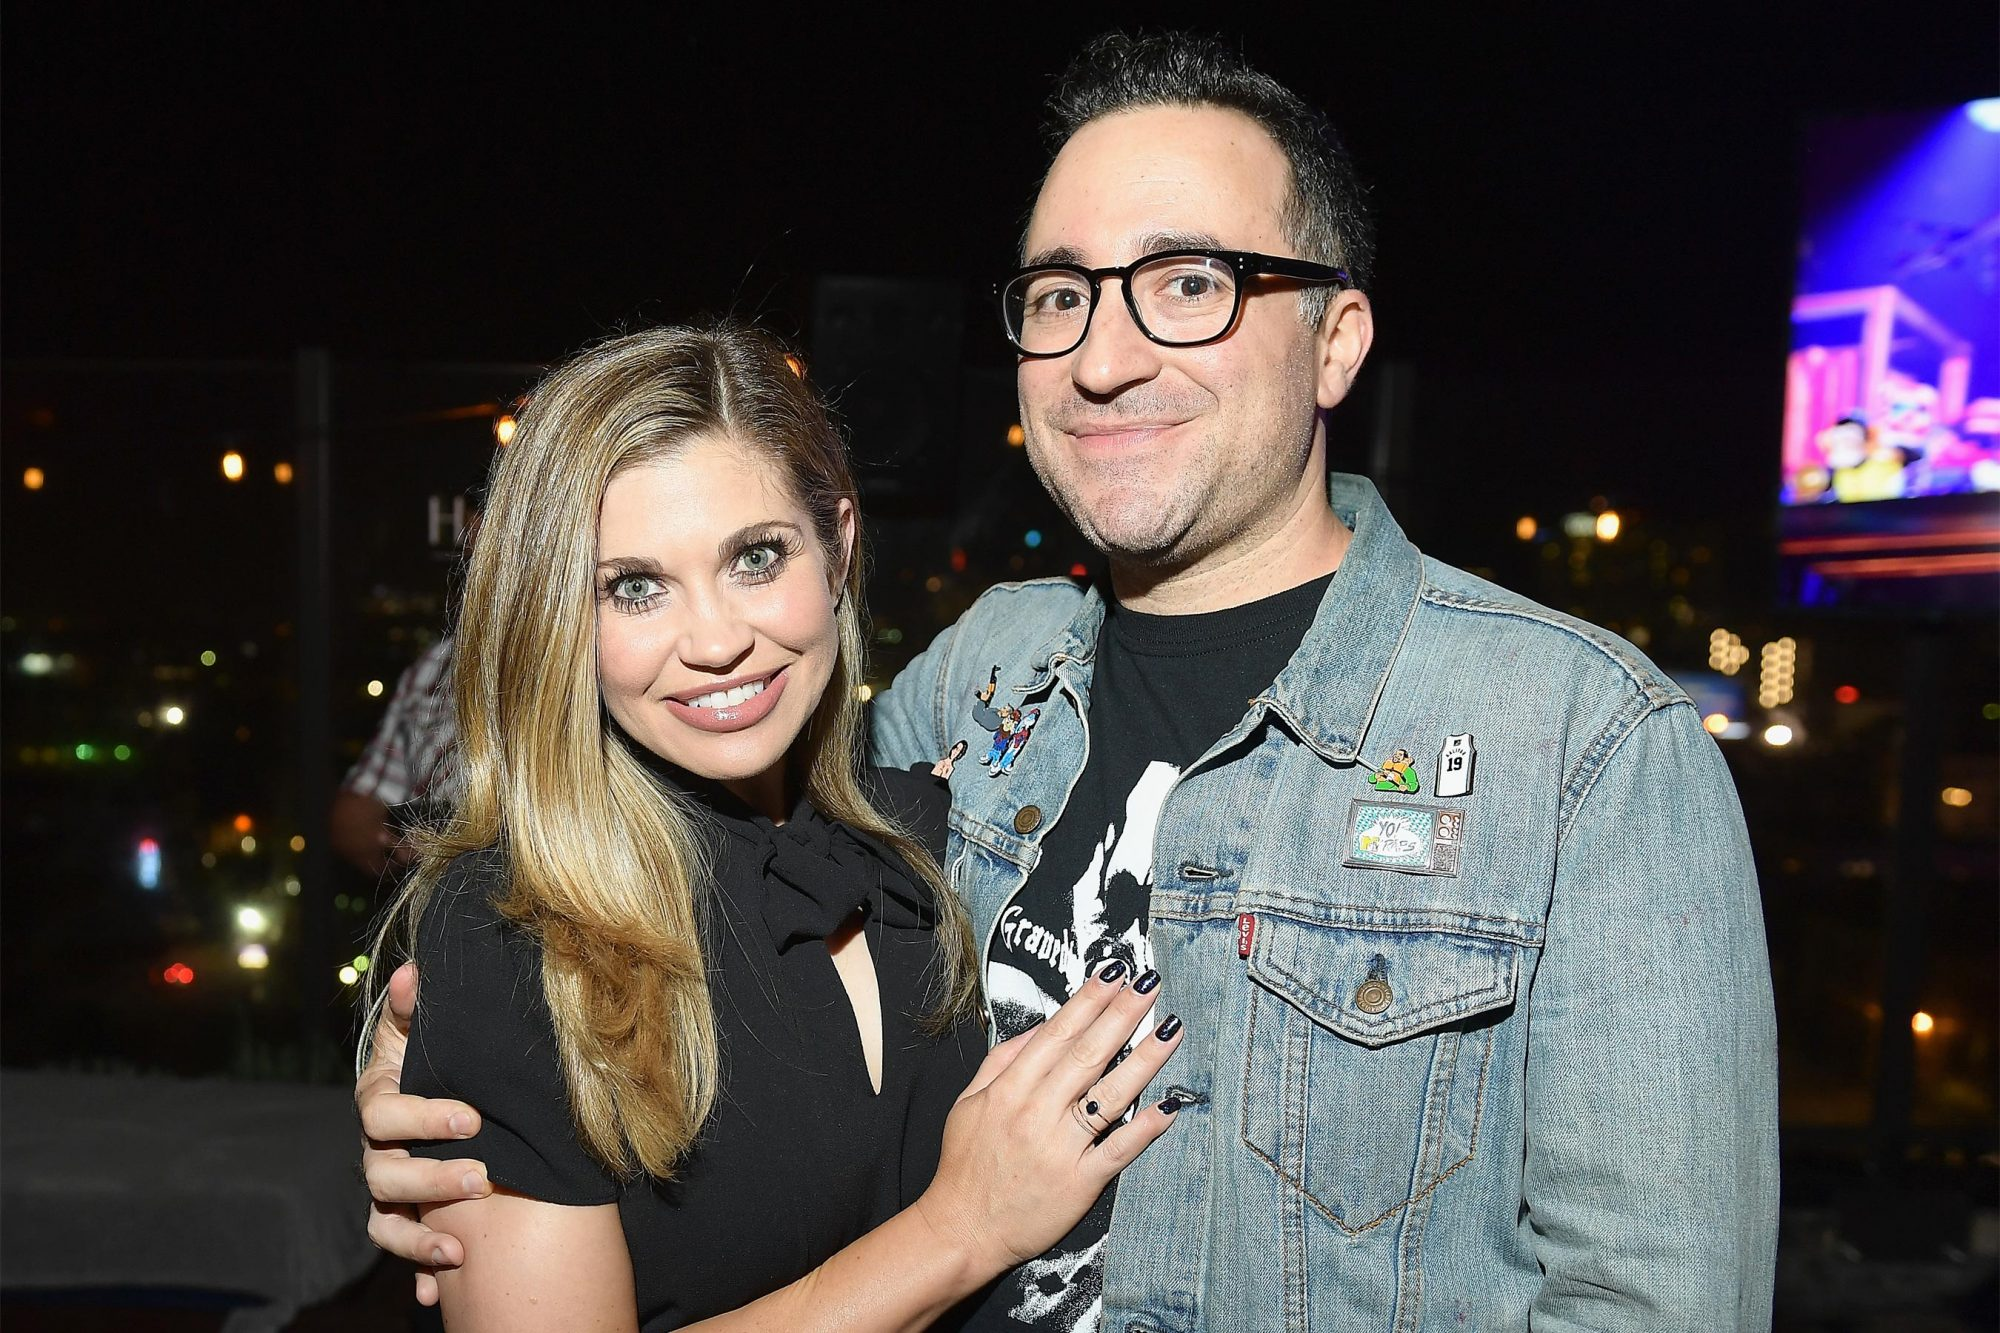 HOLLYWOOD, CA - OCTOBER 11: Danielle Fishel (L) and executive producer Jensen Karp at TBS' Drop the Mic and The Joker's Wild Premiere Party at Dream Hotel on October 11, 2017 in Hollywood, California. Shoot ID 26854_010 (Photo by Matt Winkelmeyer/Getty Images for TBS)